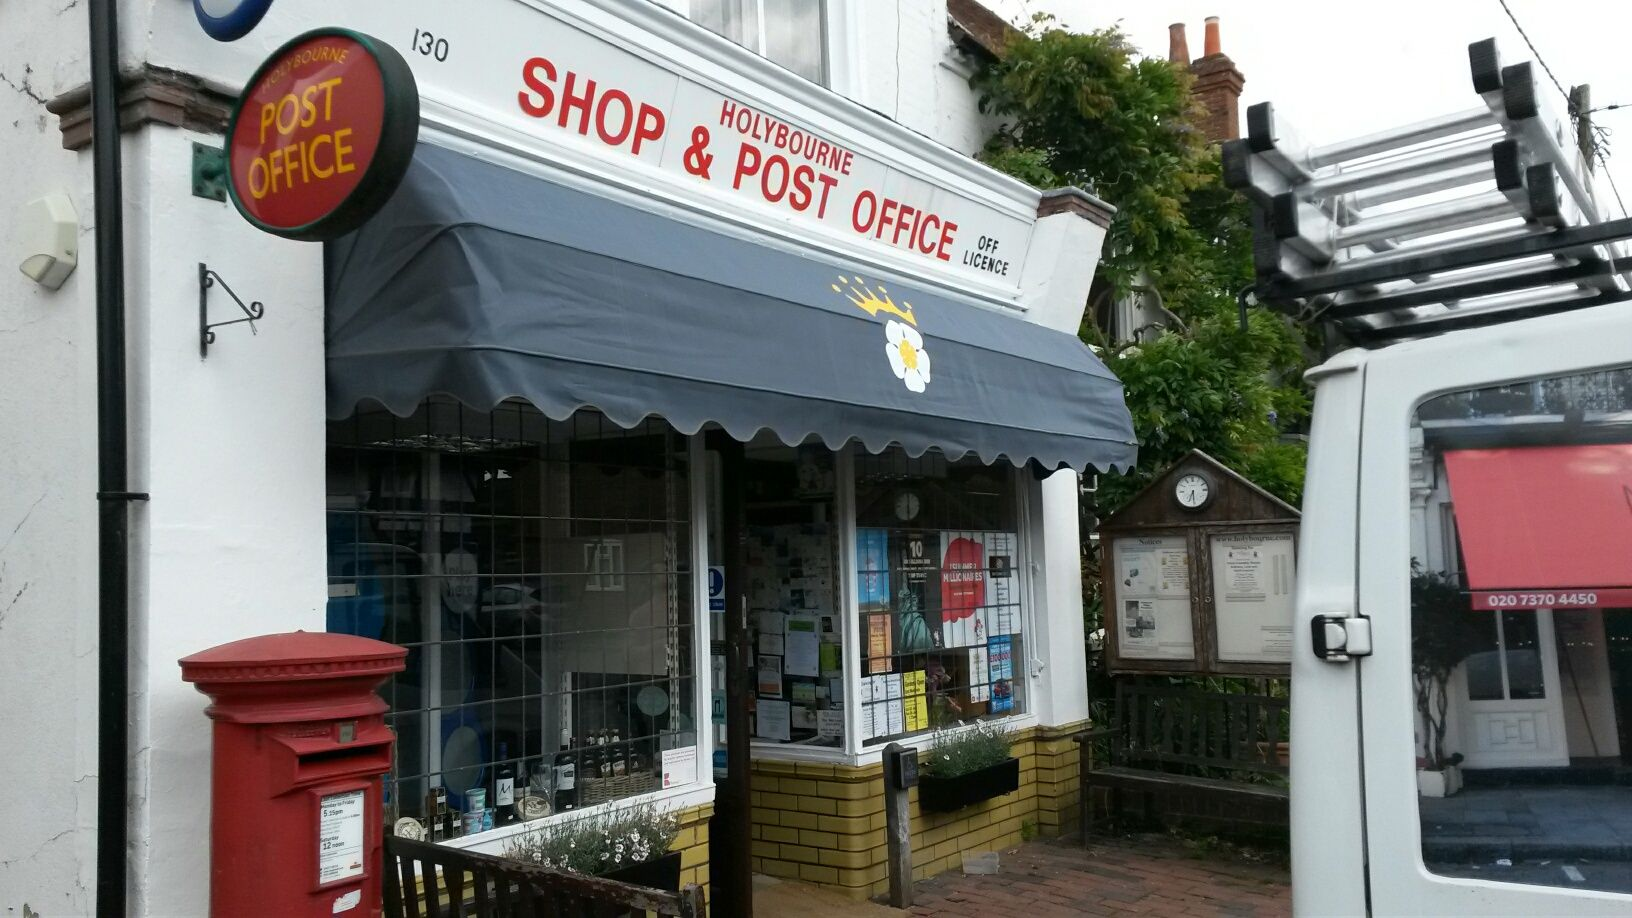 A new Dutch Canopy for Holybourne Post Office this rev&ed shop has become the heart & A new Dutch Canopy for Holybourne Post Office this revamped shop ...